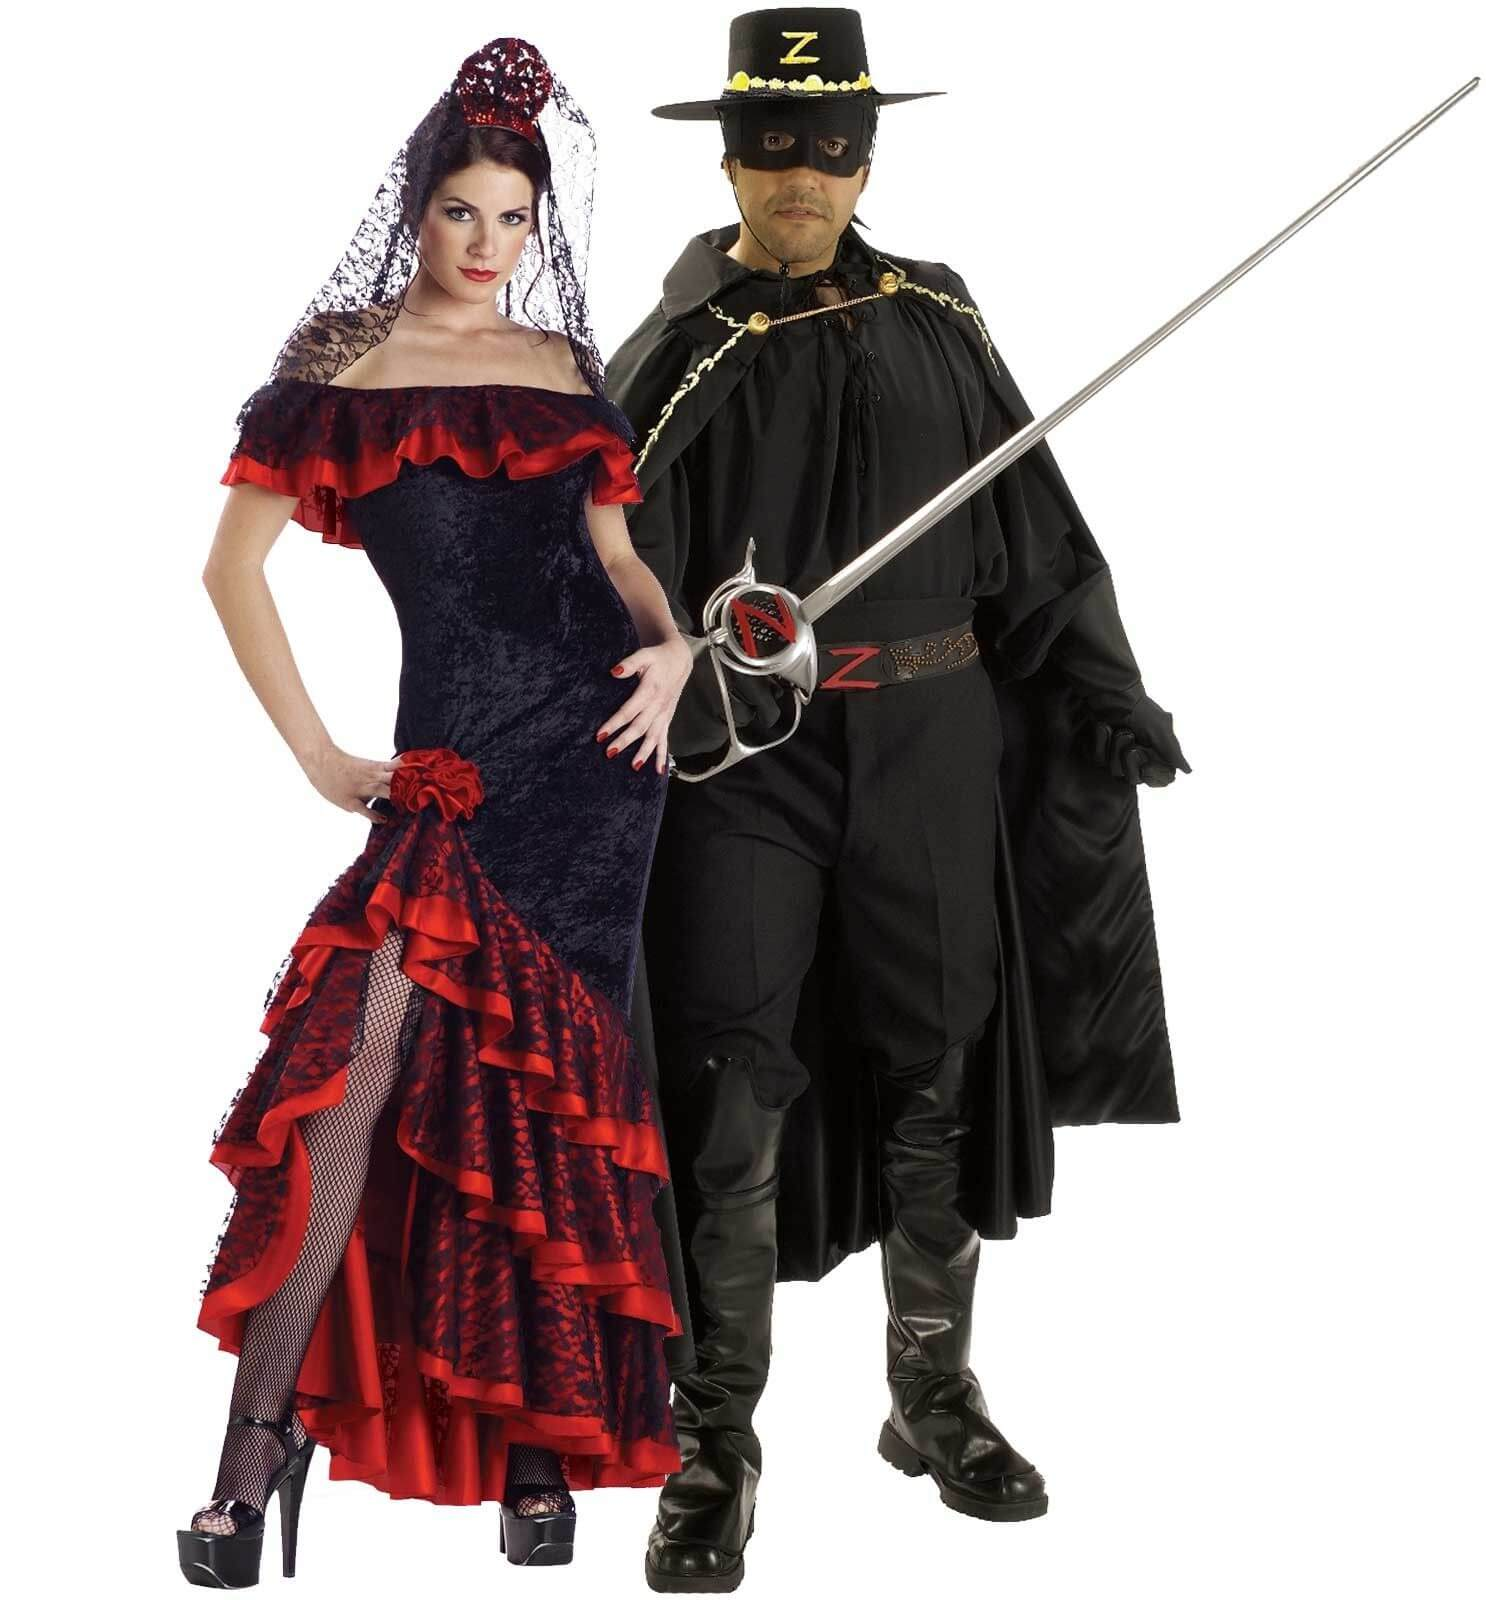 zorro elena Halloween costumes for couples funny